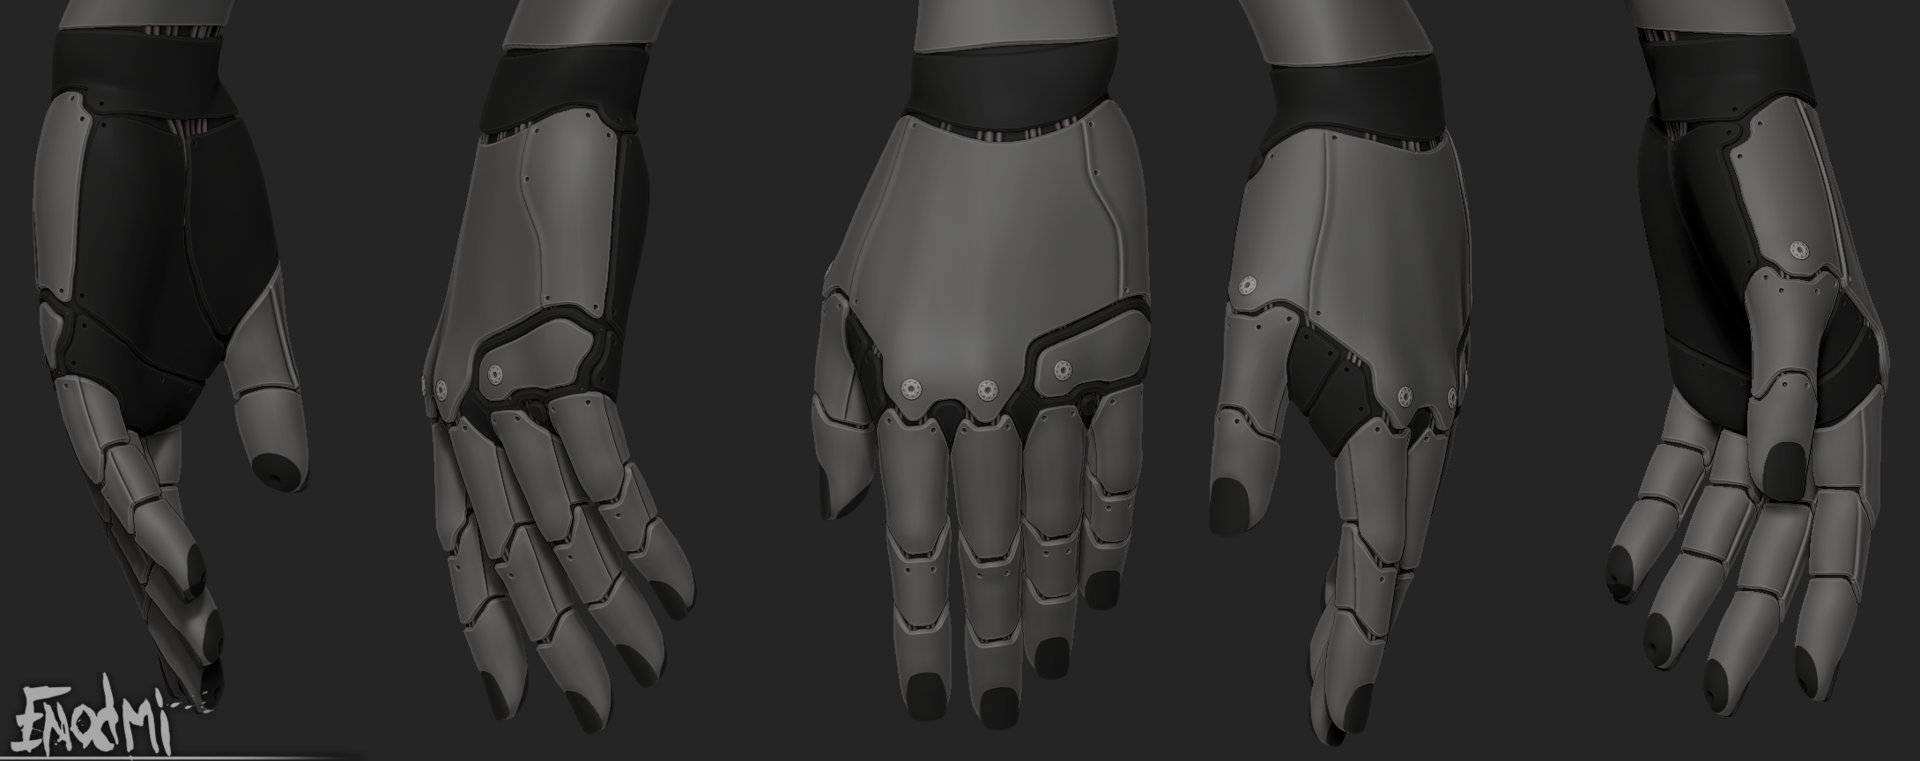 Forest telford hands wip